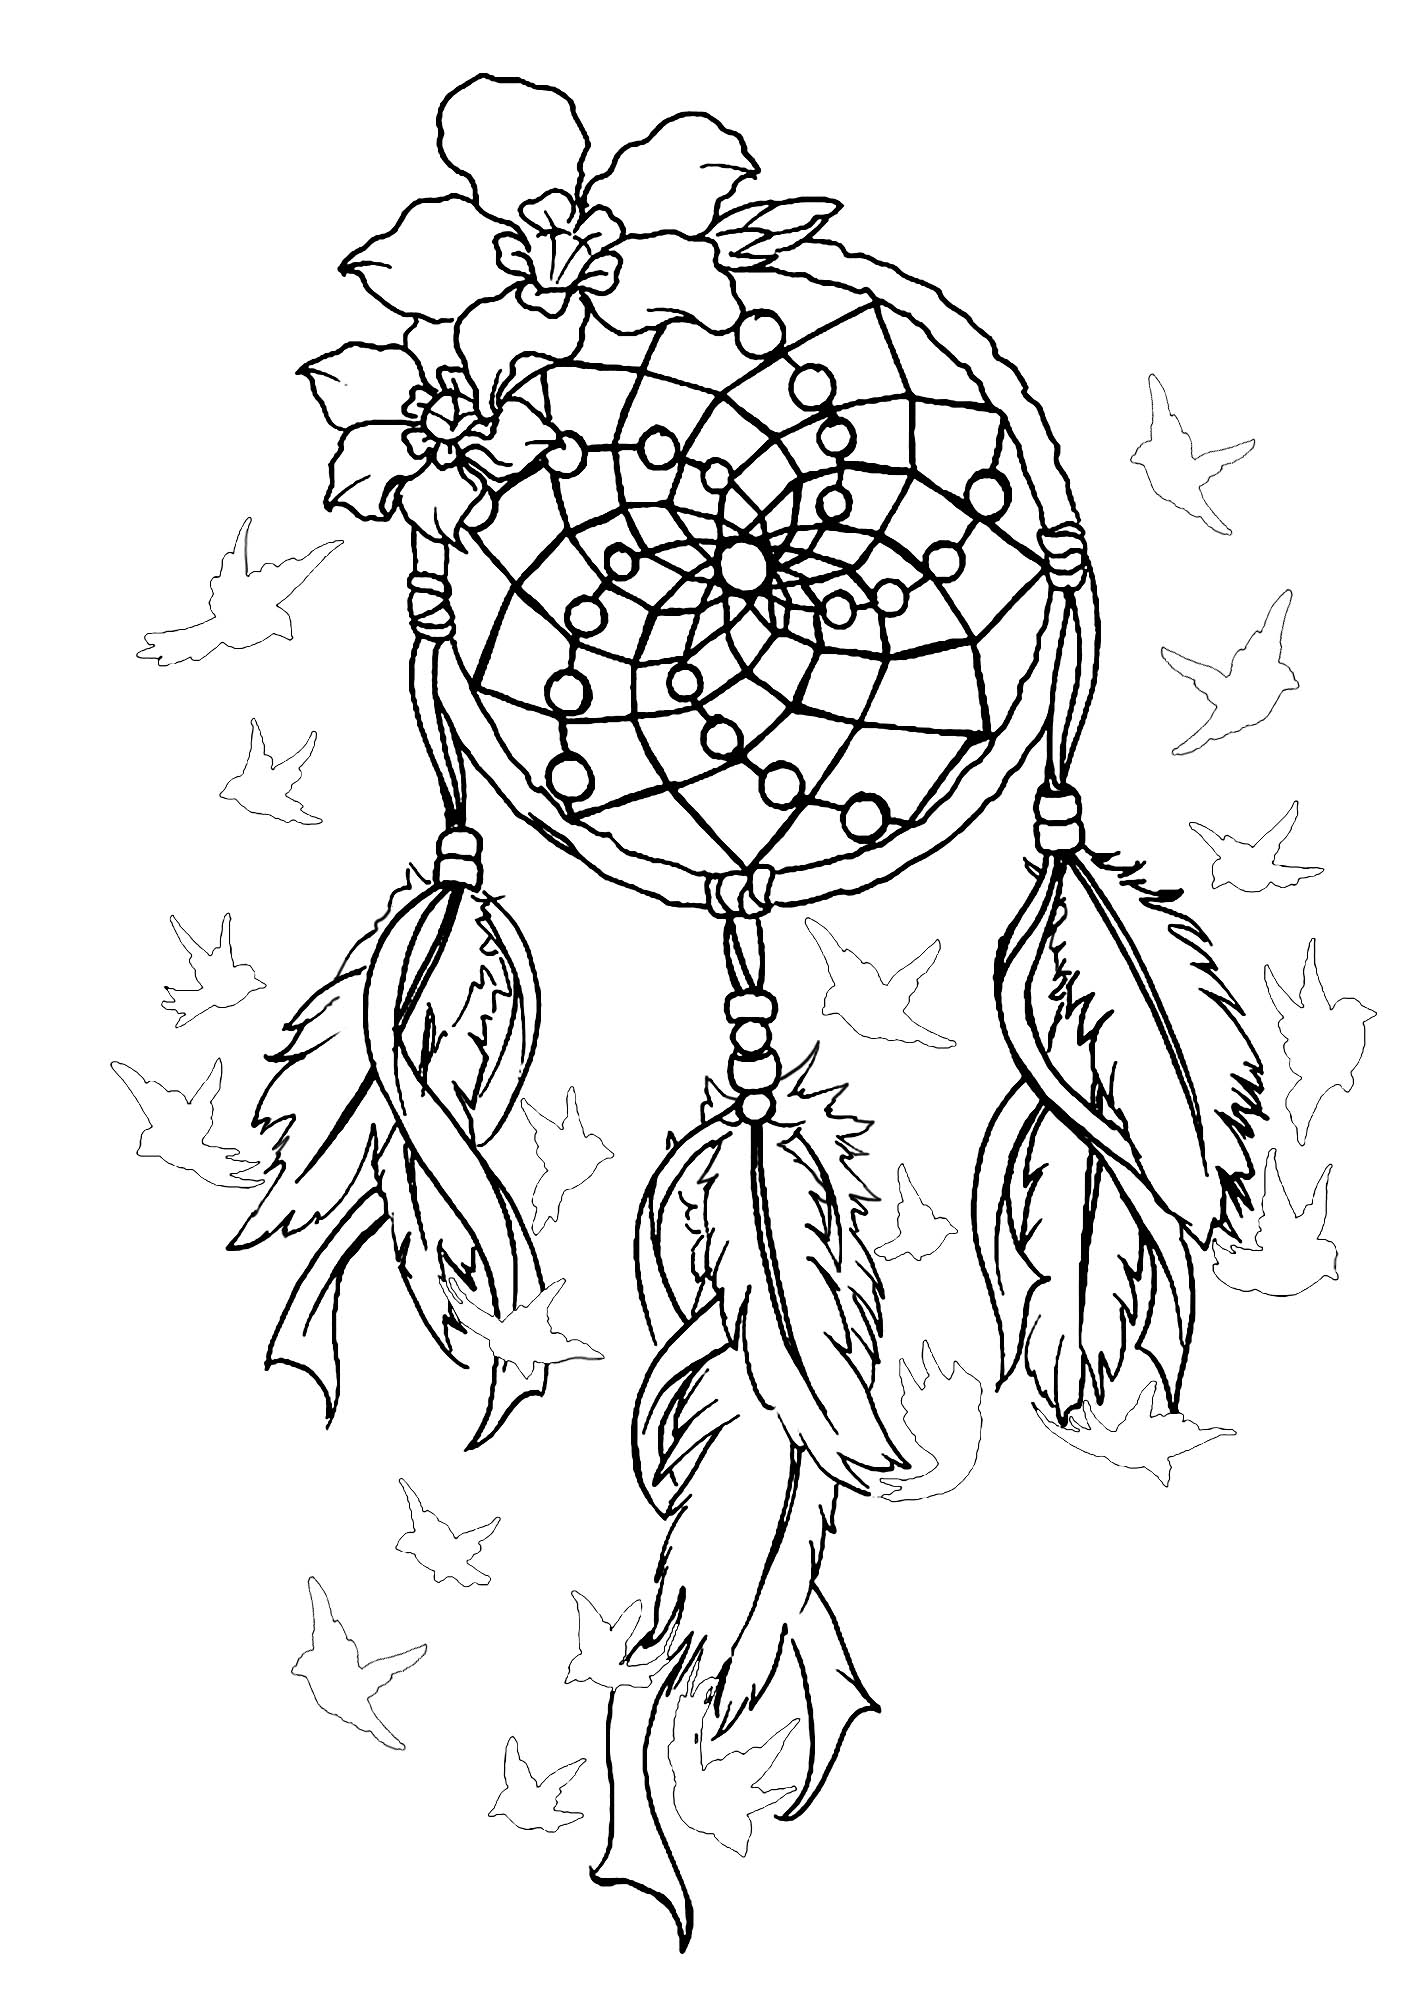 Dreamcatcher a imprimer 2 anti stress art th rapie - Coloriage art ...